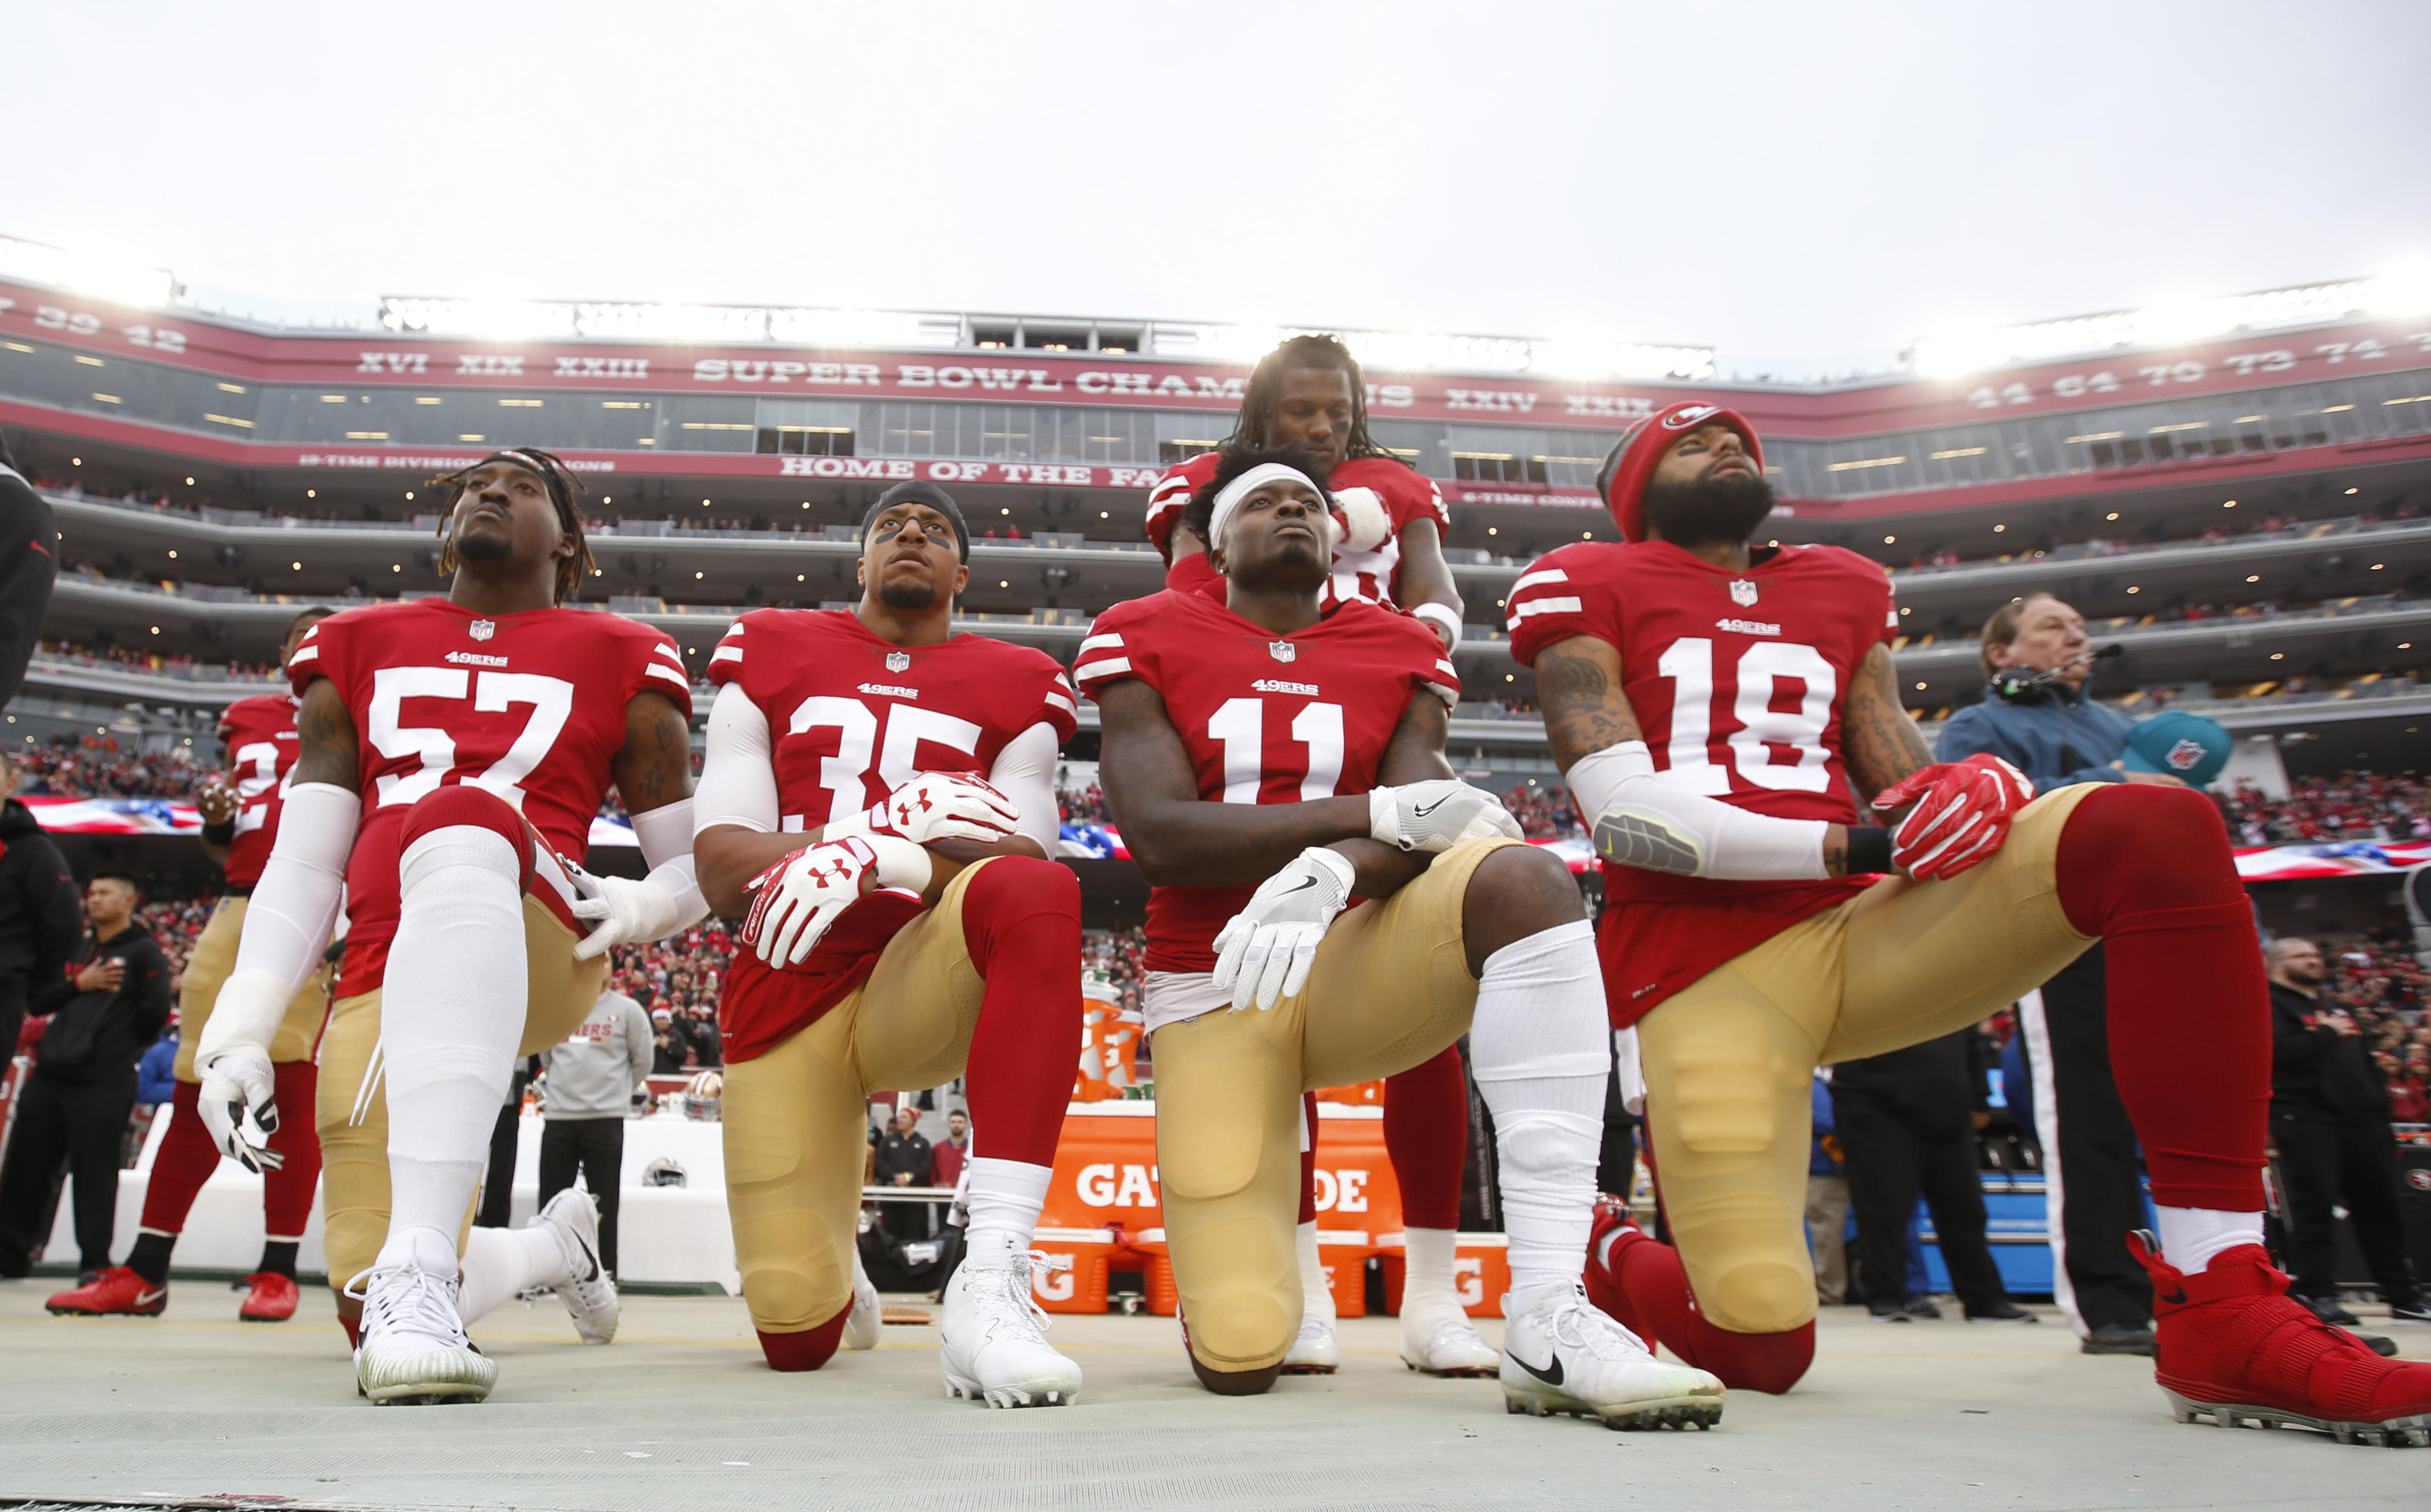 San Francisco 49ers players kneel on the sideline as the national anthem plays before a game last December.